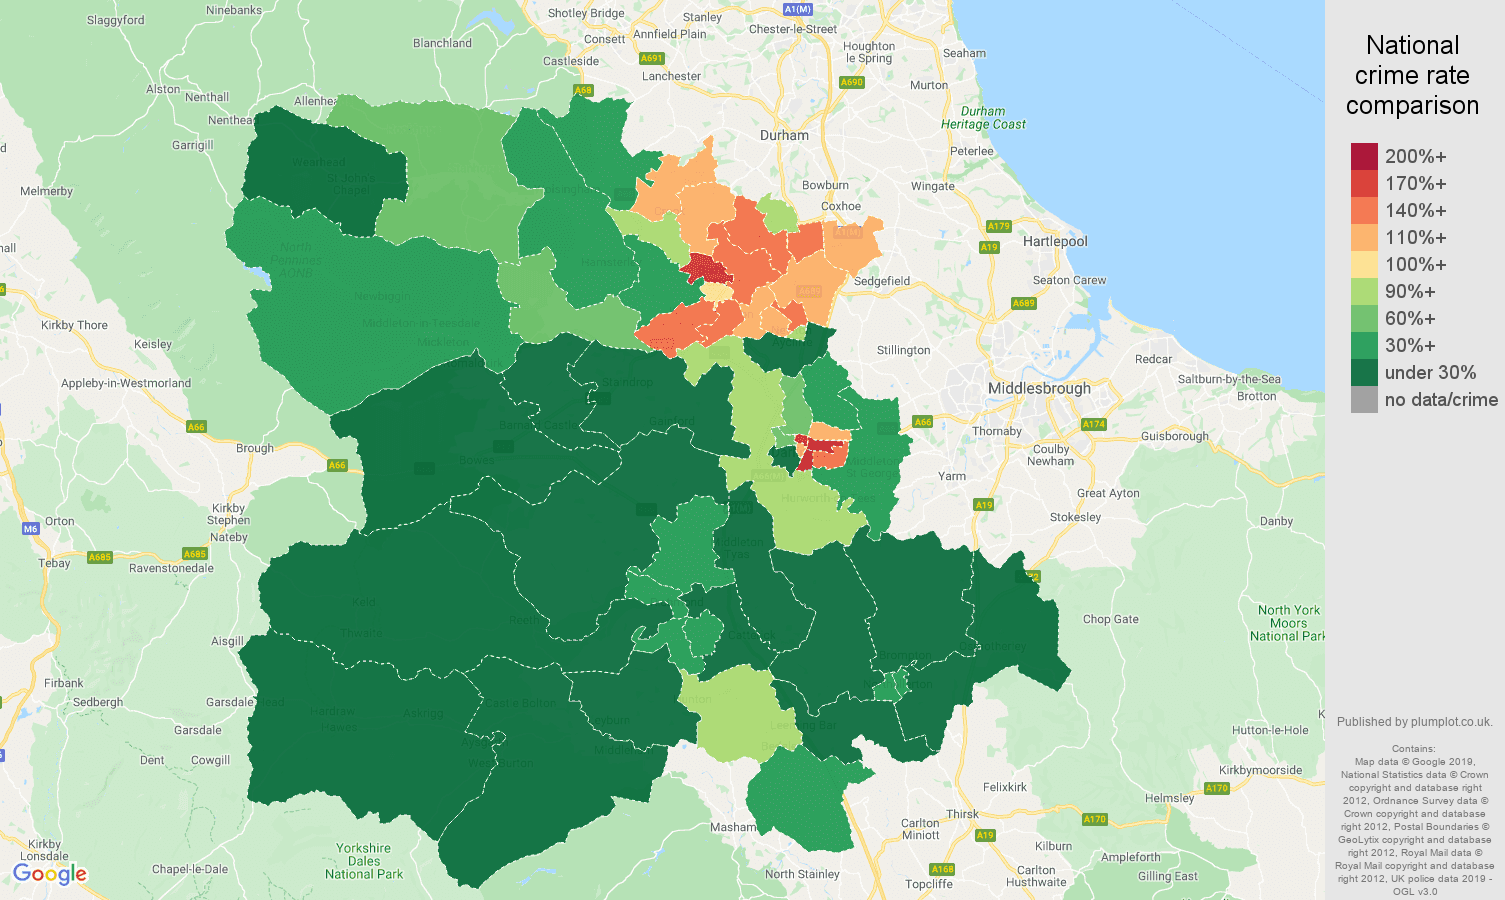 Darlington public order crime rate comparison map